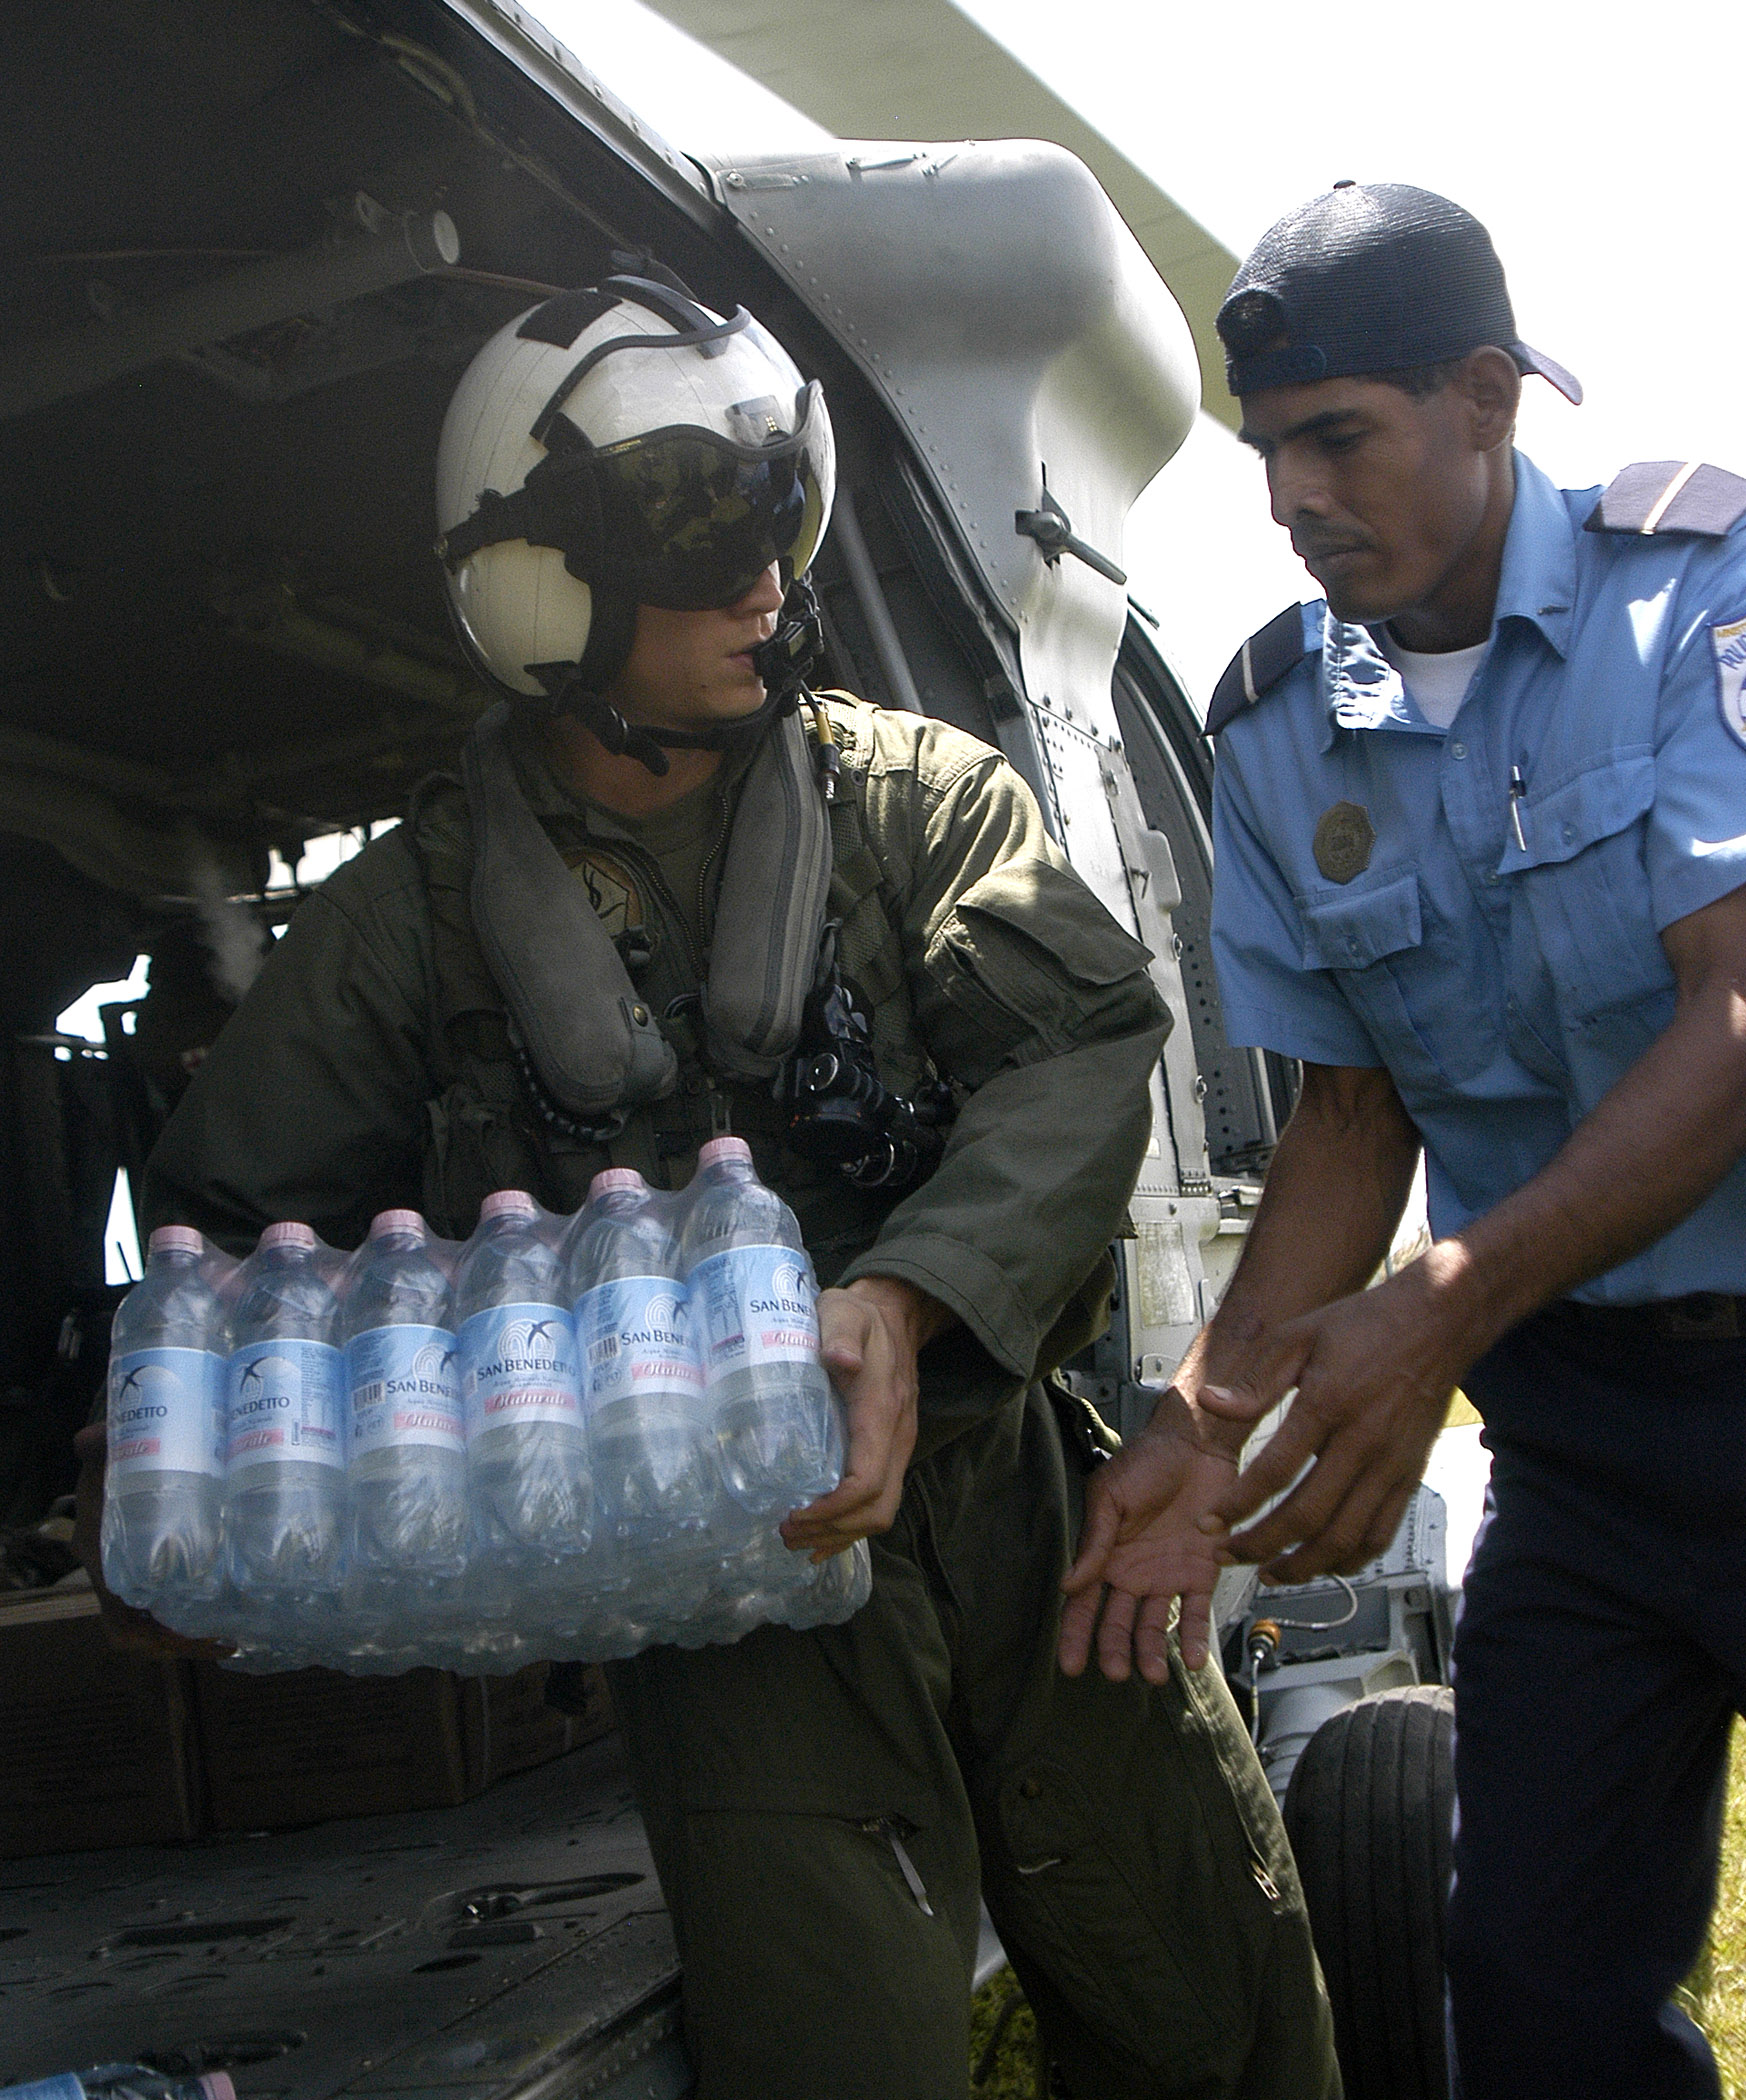 File:US Navy 070907-N-1189B-075 A U.S. Navy aircrewman attached to ...